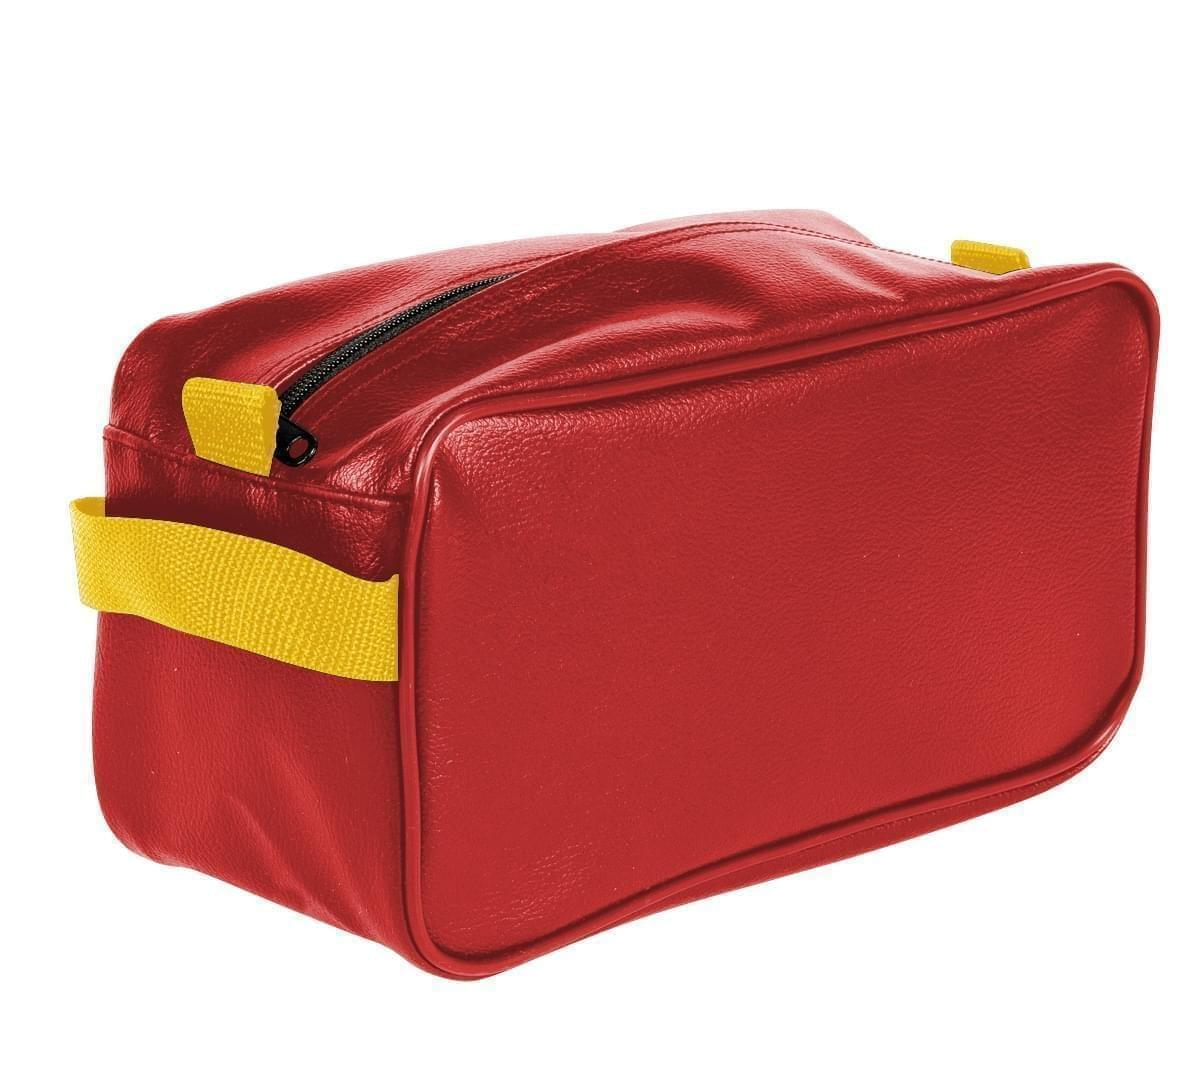 USA Made Cosmetic & Toiletry Cases, 3000996-600